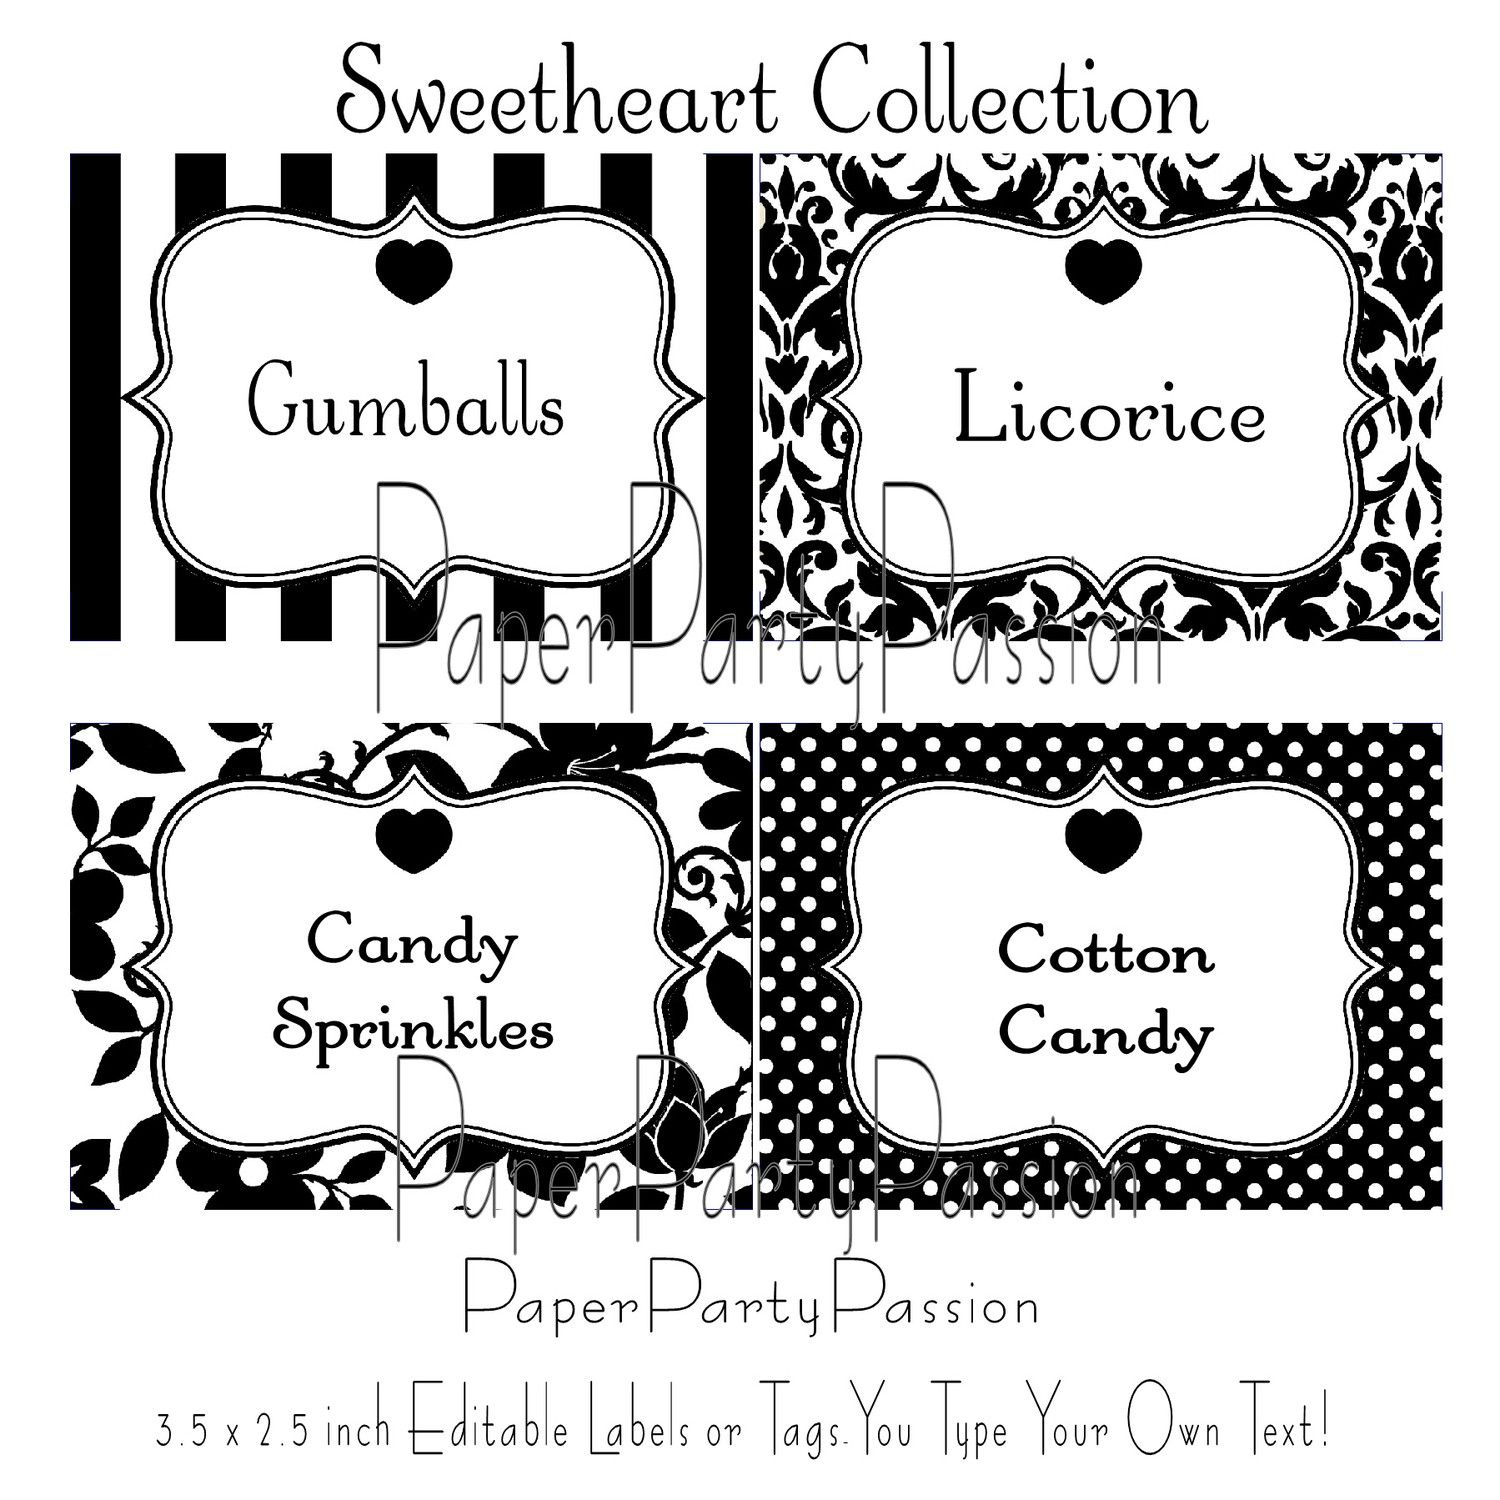 picture about Free Printable Buffet Food Labels titled Sweet Buffet Printable Editable Celebration Labels or Tags Black